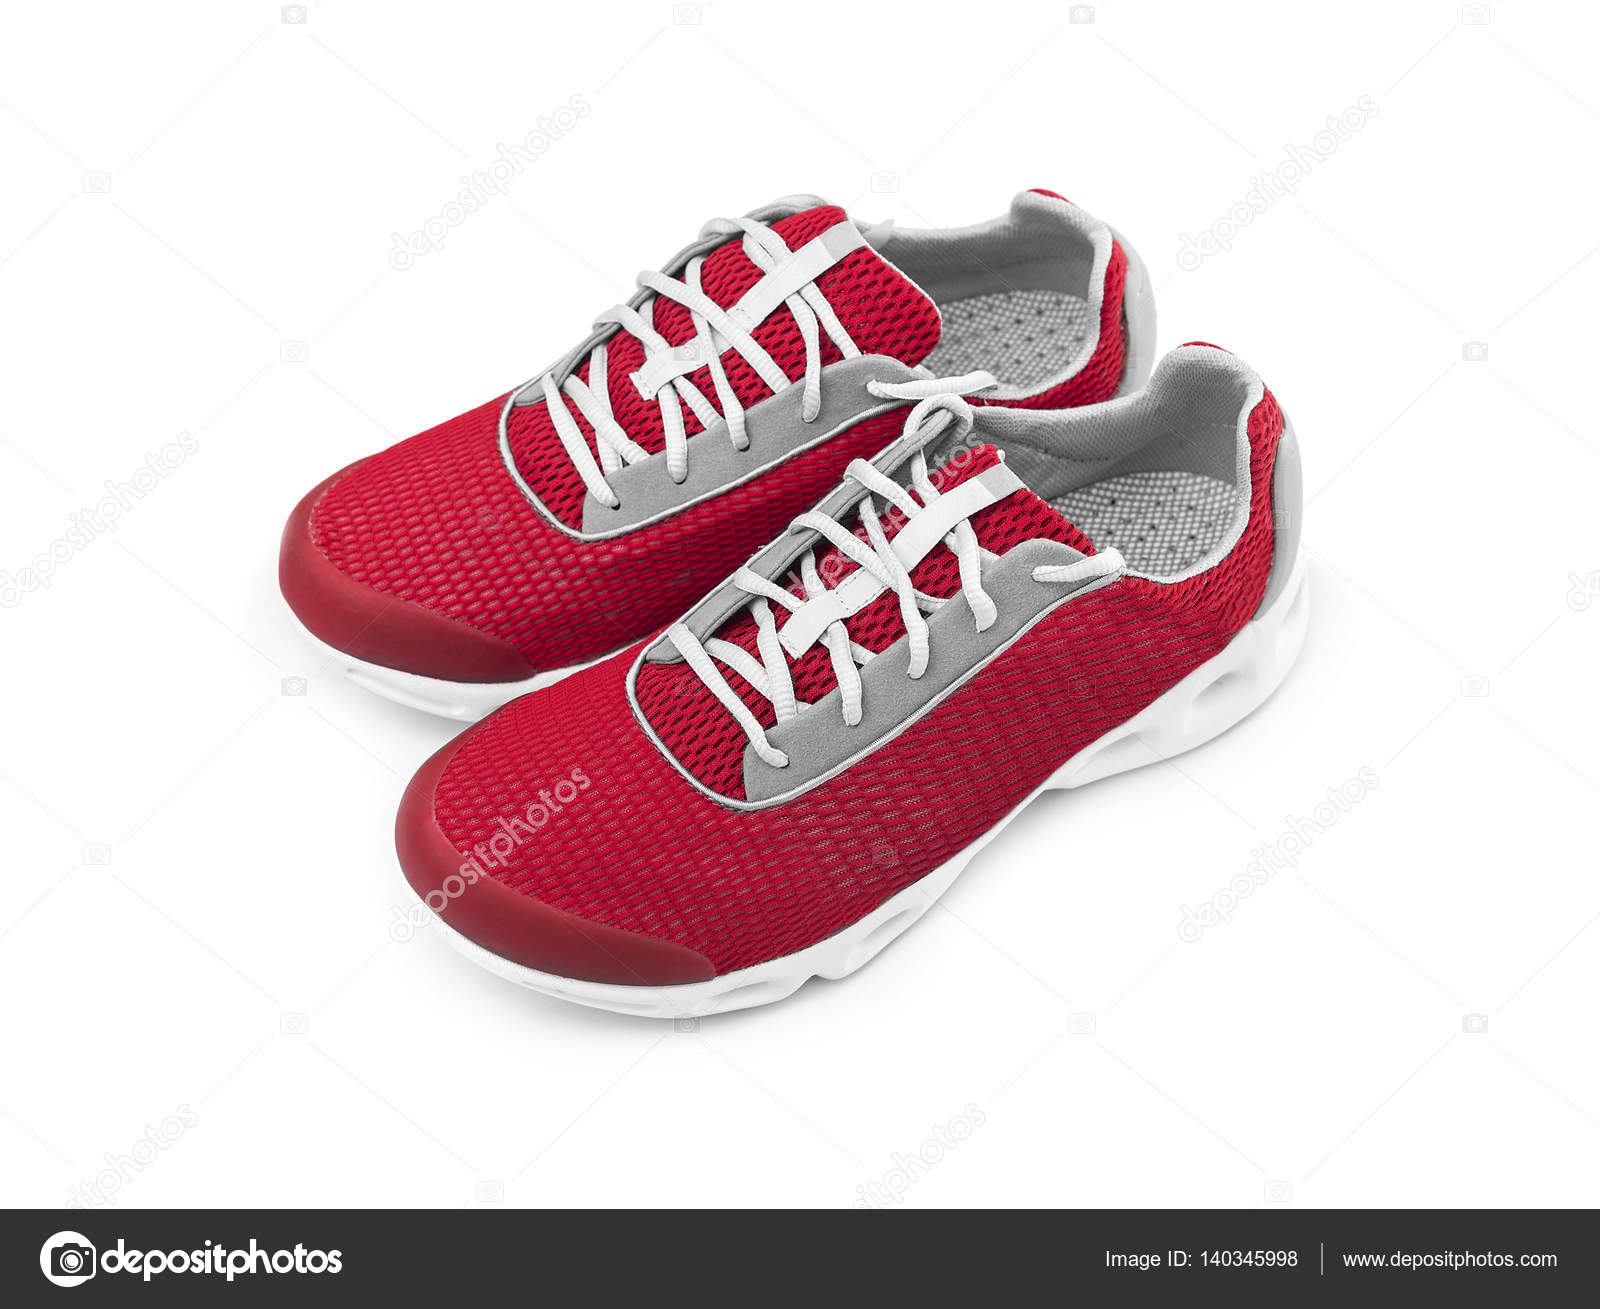 low priced cc250 8a1c5 No-Name moderne Sneaker. — Stockfoto © believeinme #140345998